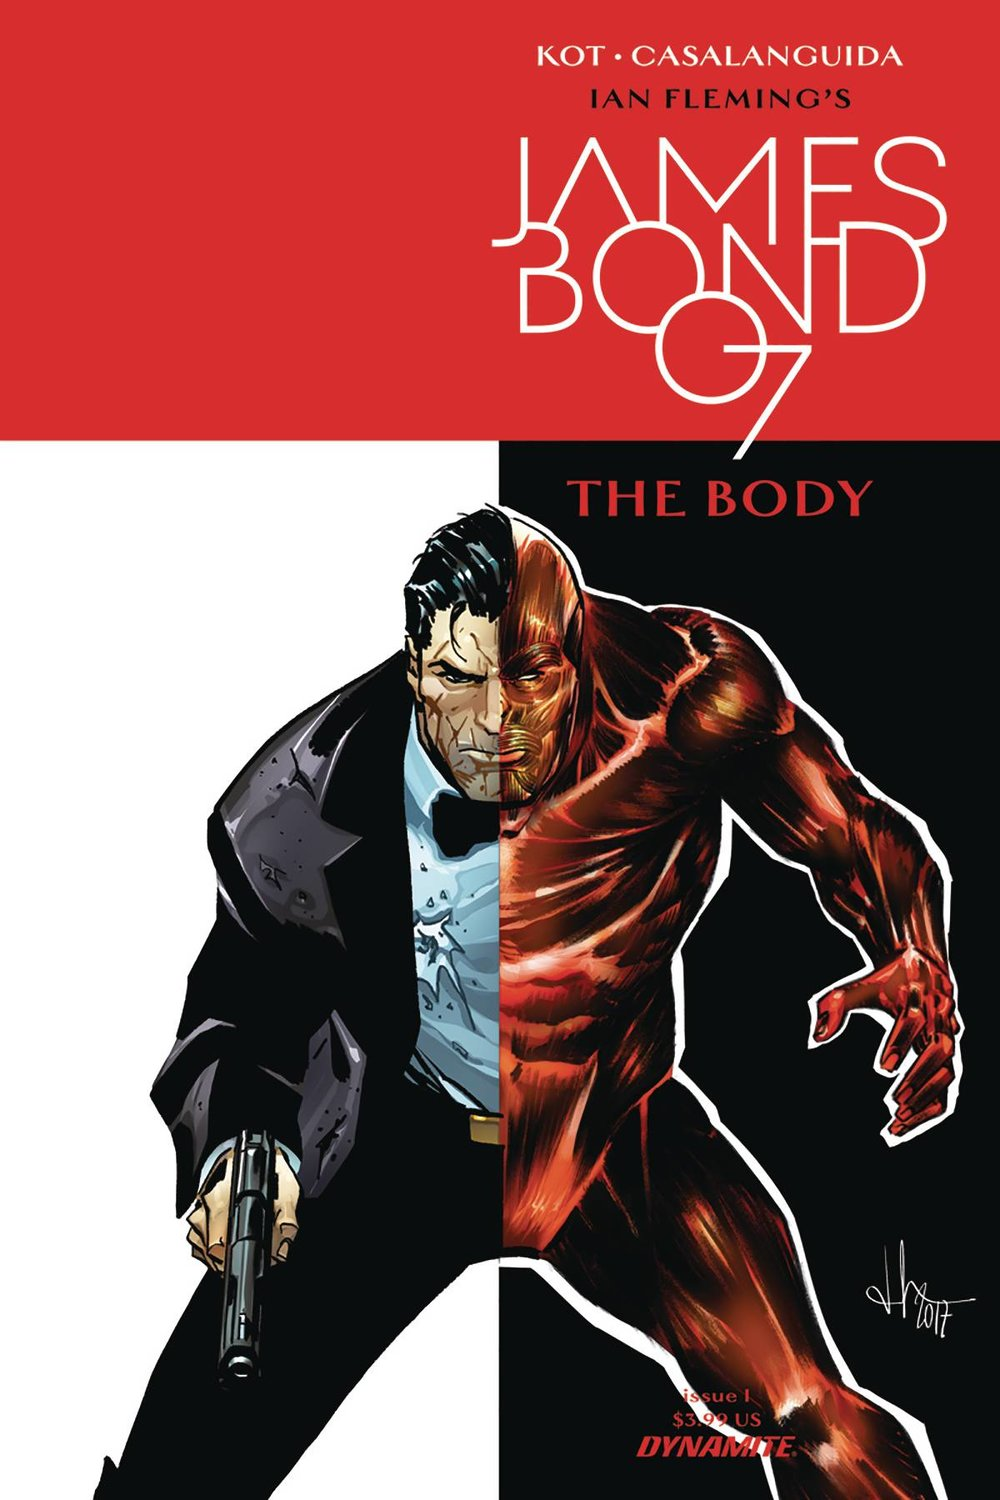 JAMES BOND THE BODY 1 CVR A CASALANGUIDA.jpg